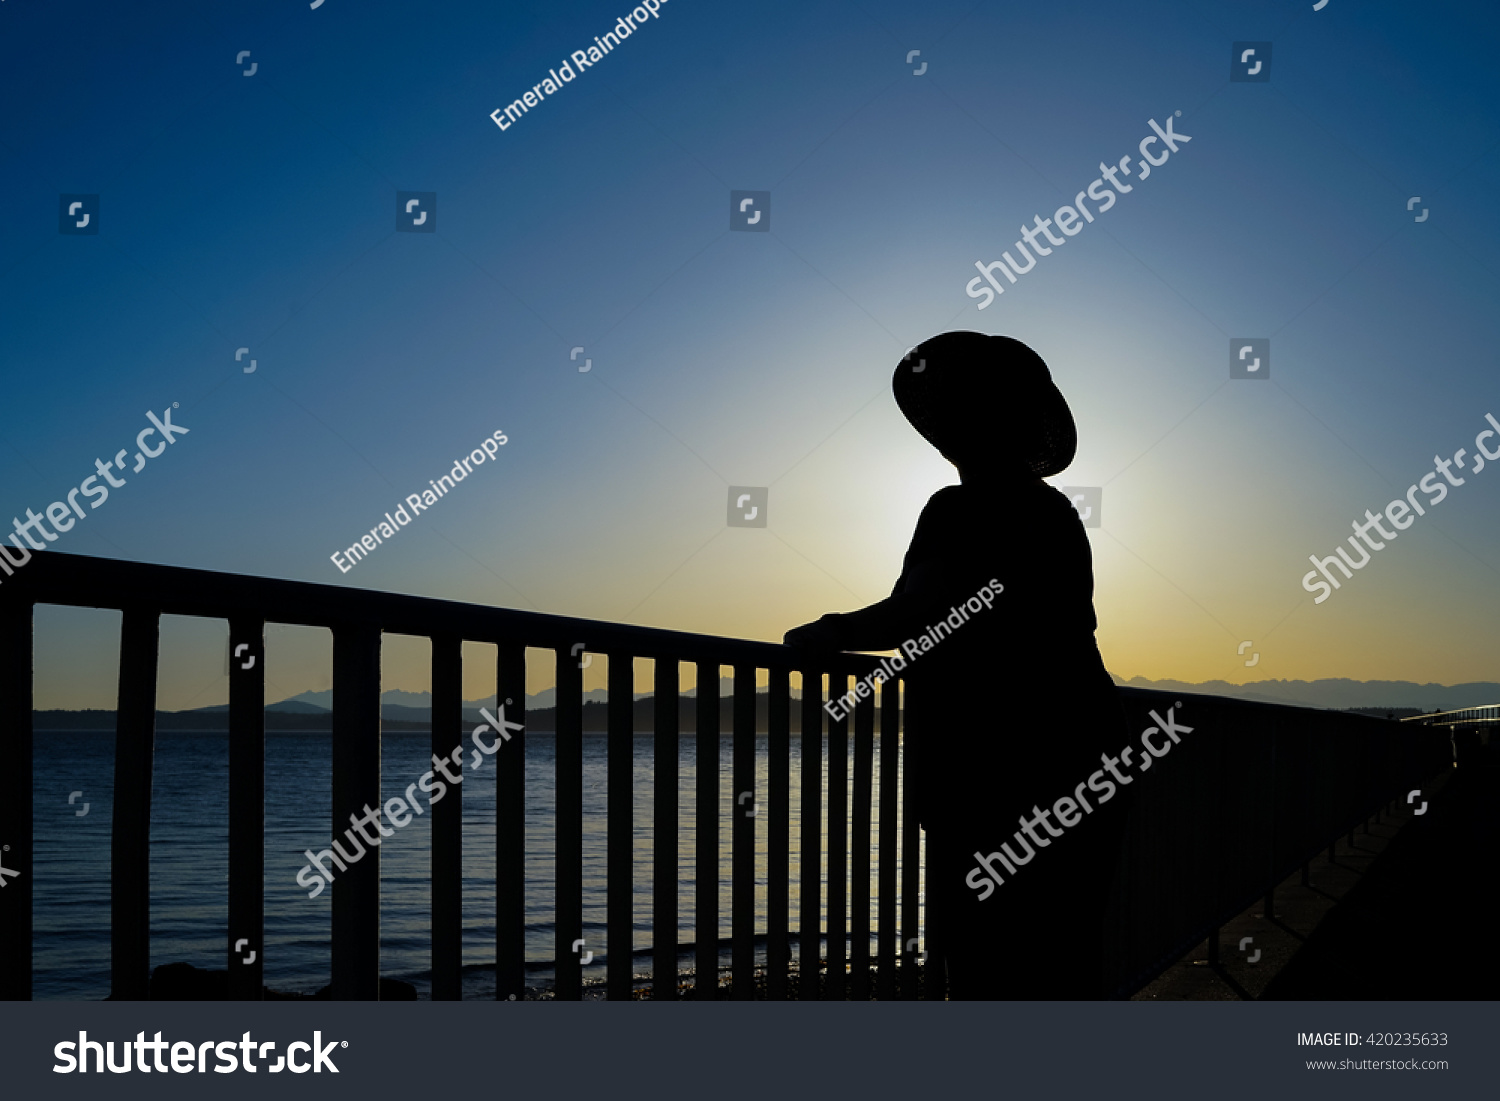 fe7c4cb9597 Female Wearing Sun Hat Standing By Railing Taking In The Sunset Silhouette